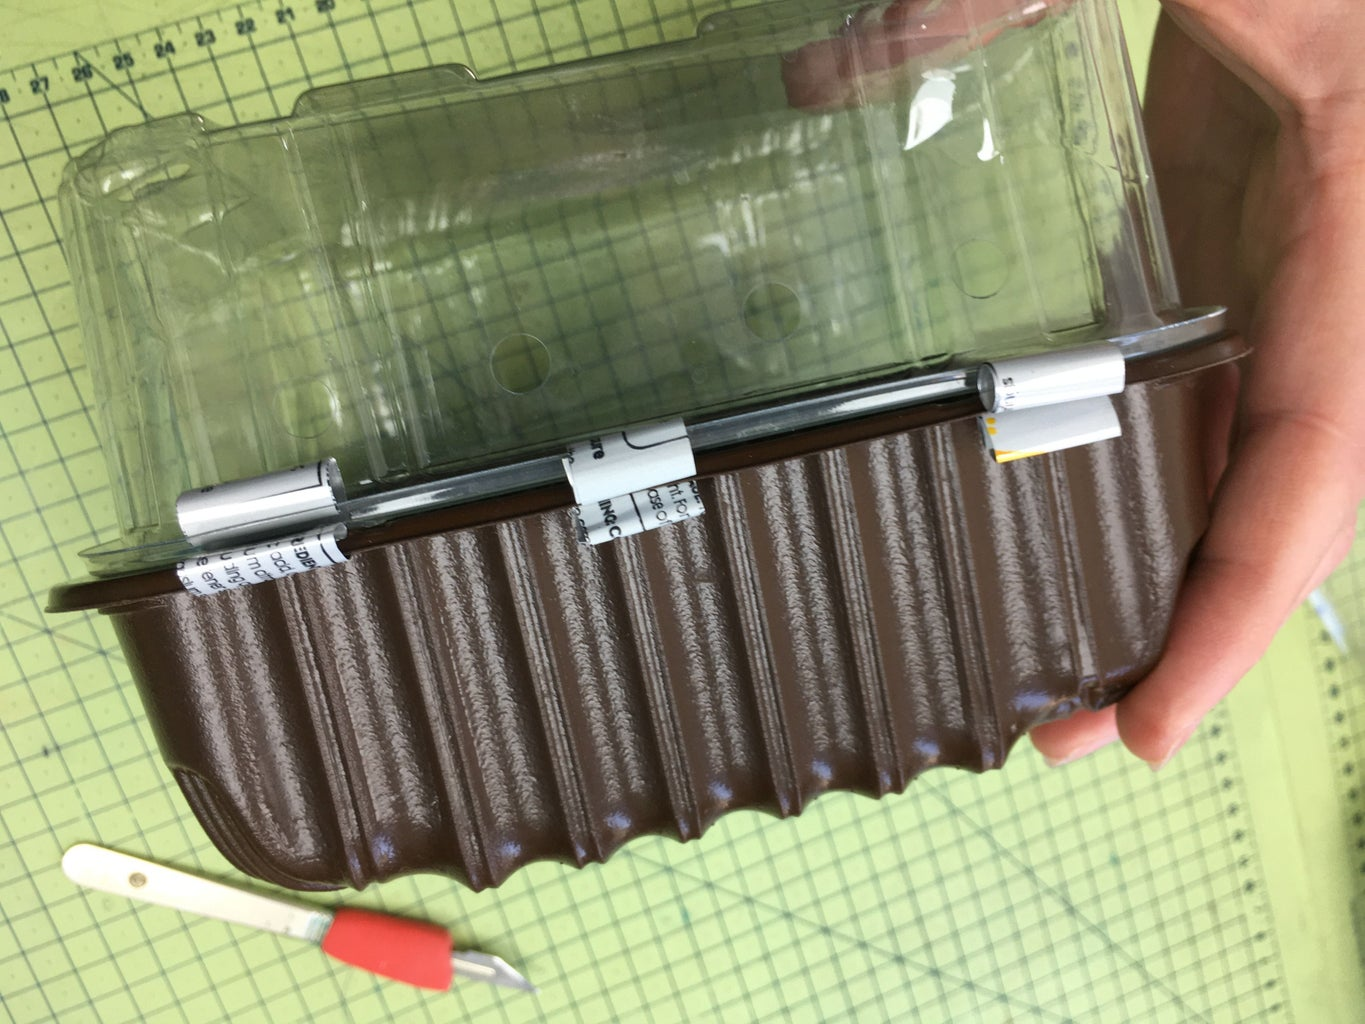 Indoor Seed Propagator - From Recycled Fruit & Veg Trays and Soda Cans